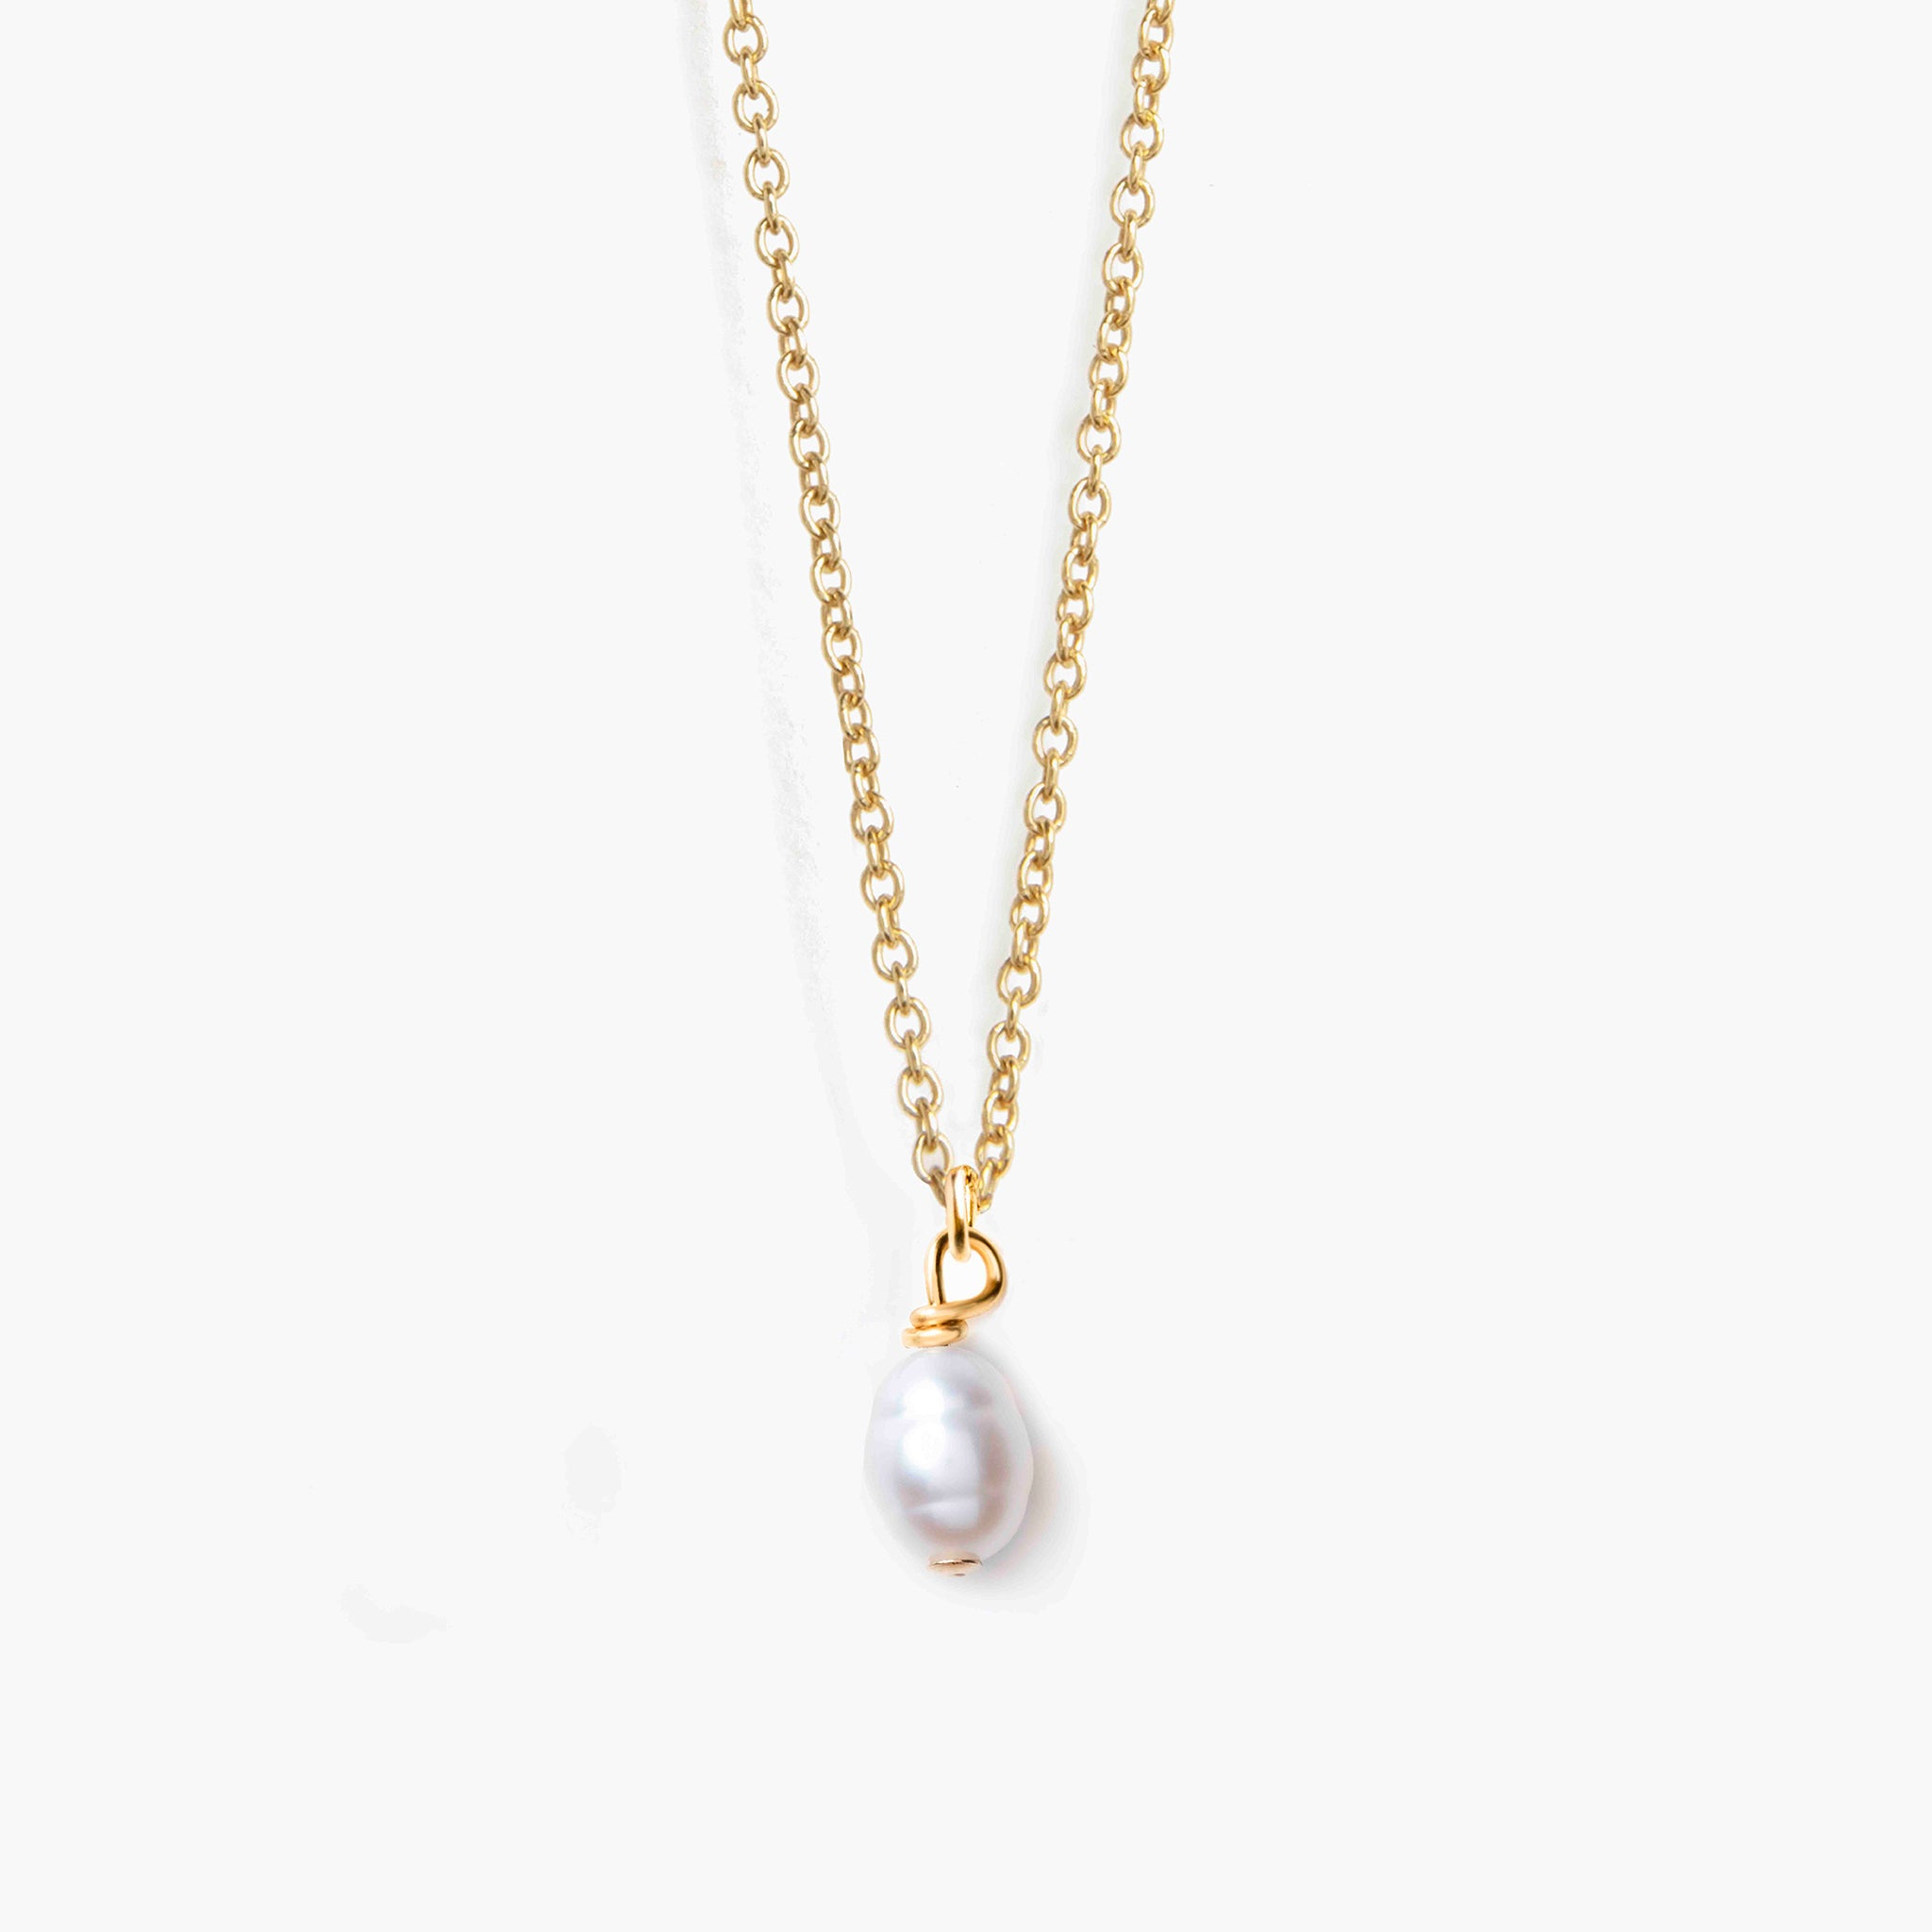 14k Gold fill chain necklace with white pearl amulet. Hand made sentimental jewellery by Wanderlust Life, in the UK.